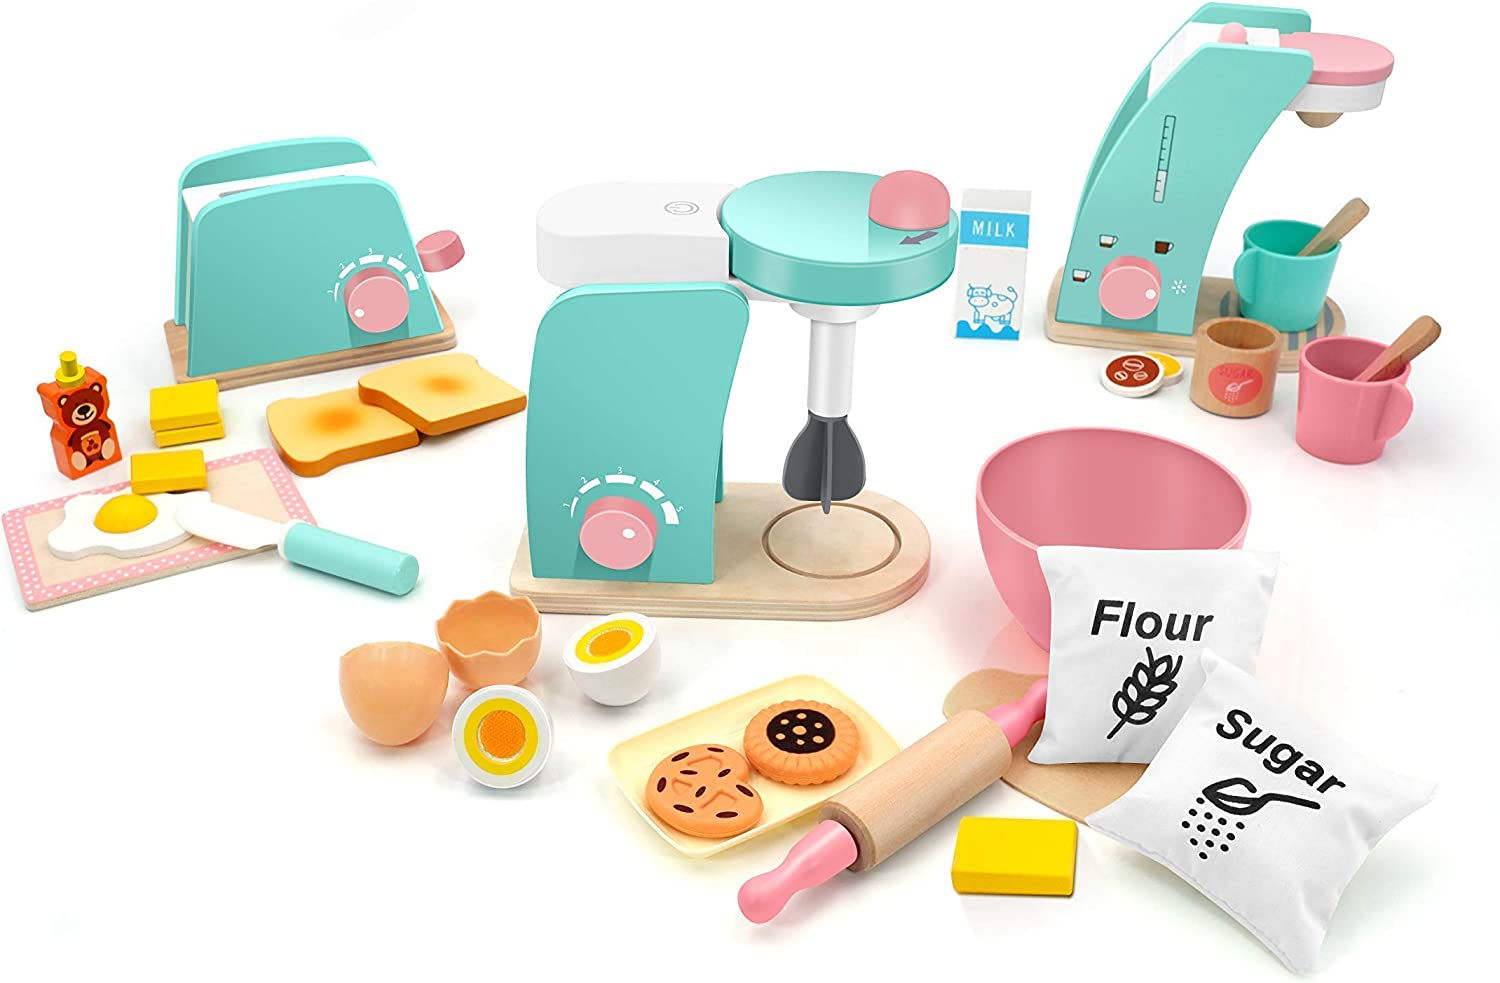 Tiny Land Wooden Toy Toaster+ Mixer + Coffee Maker